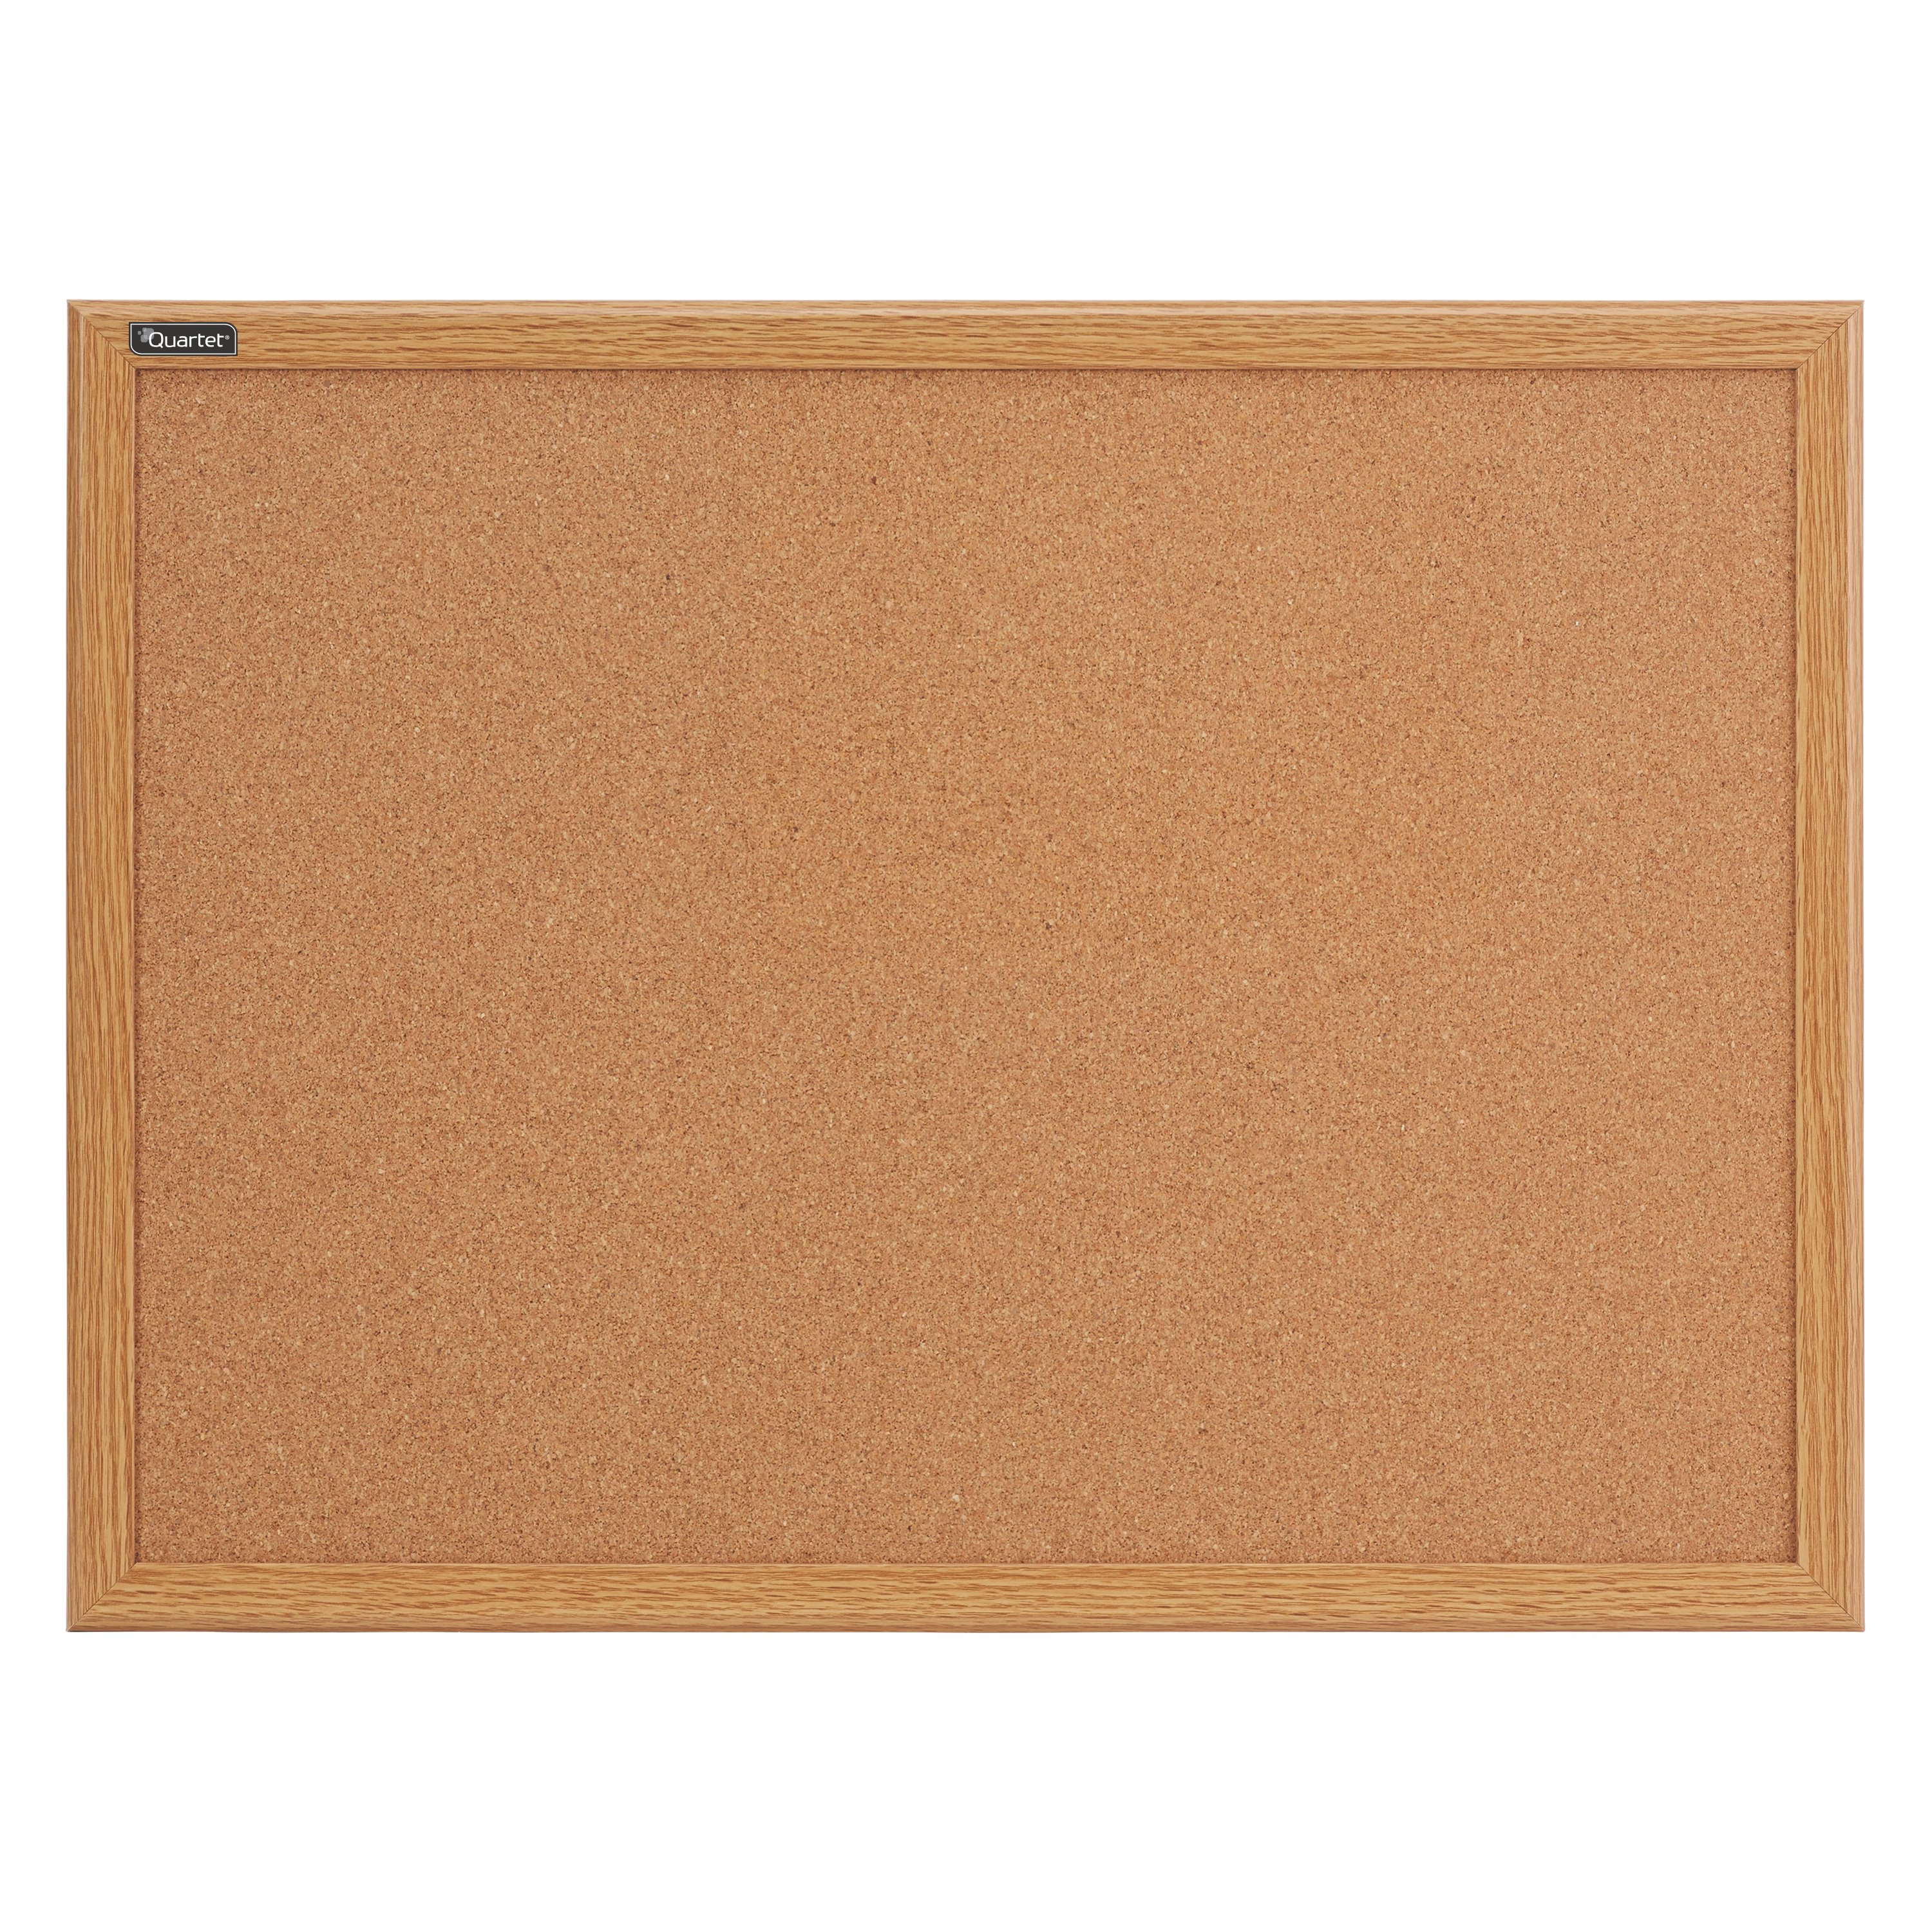 Quartet Cork Bulletin Board, 2' x 3', Oak Finish Frame (85223B)